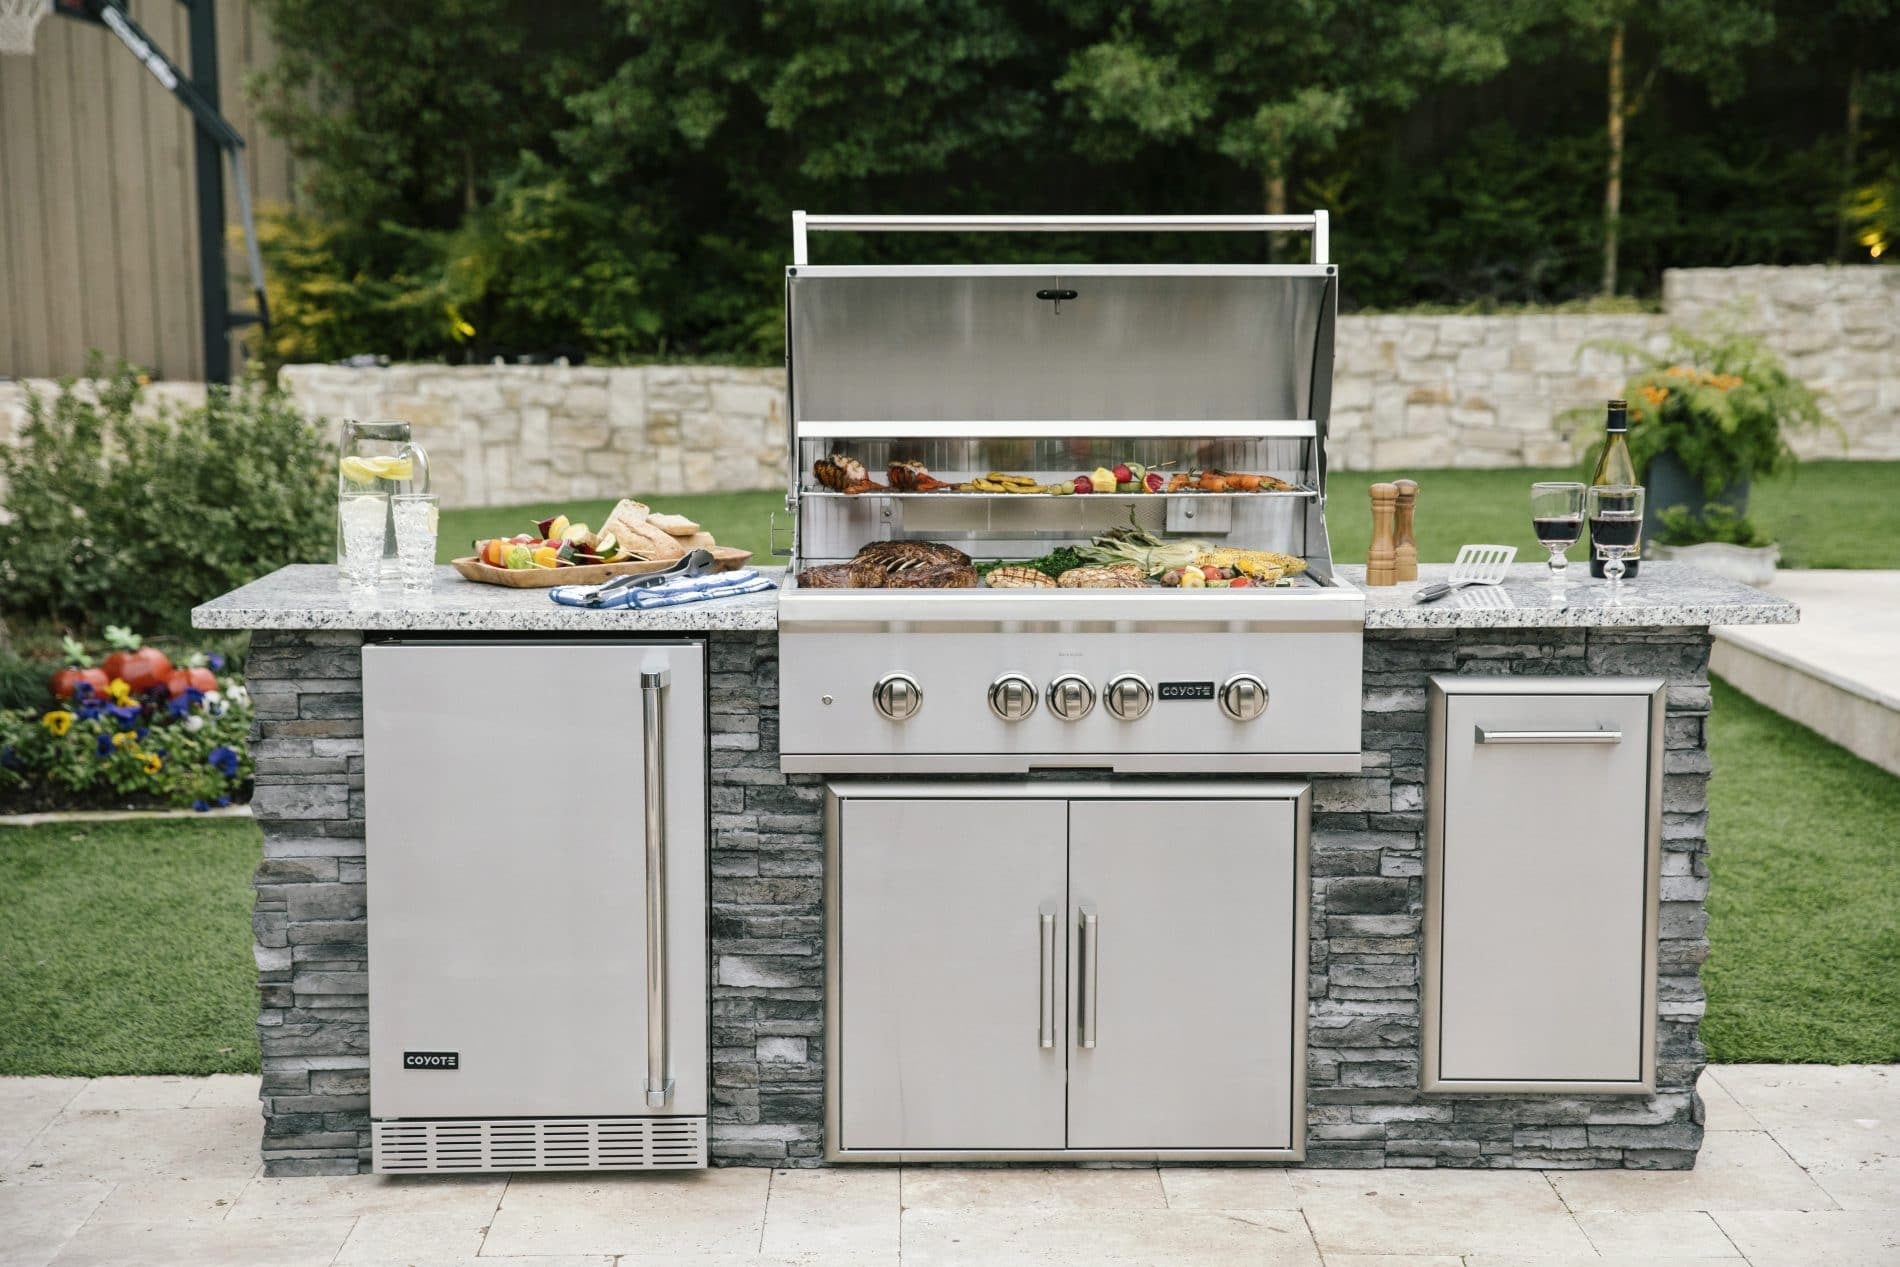 Coyote Outdoor Kitchen with Built-In C-Series Grill